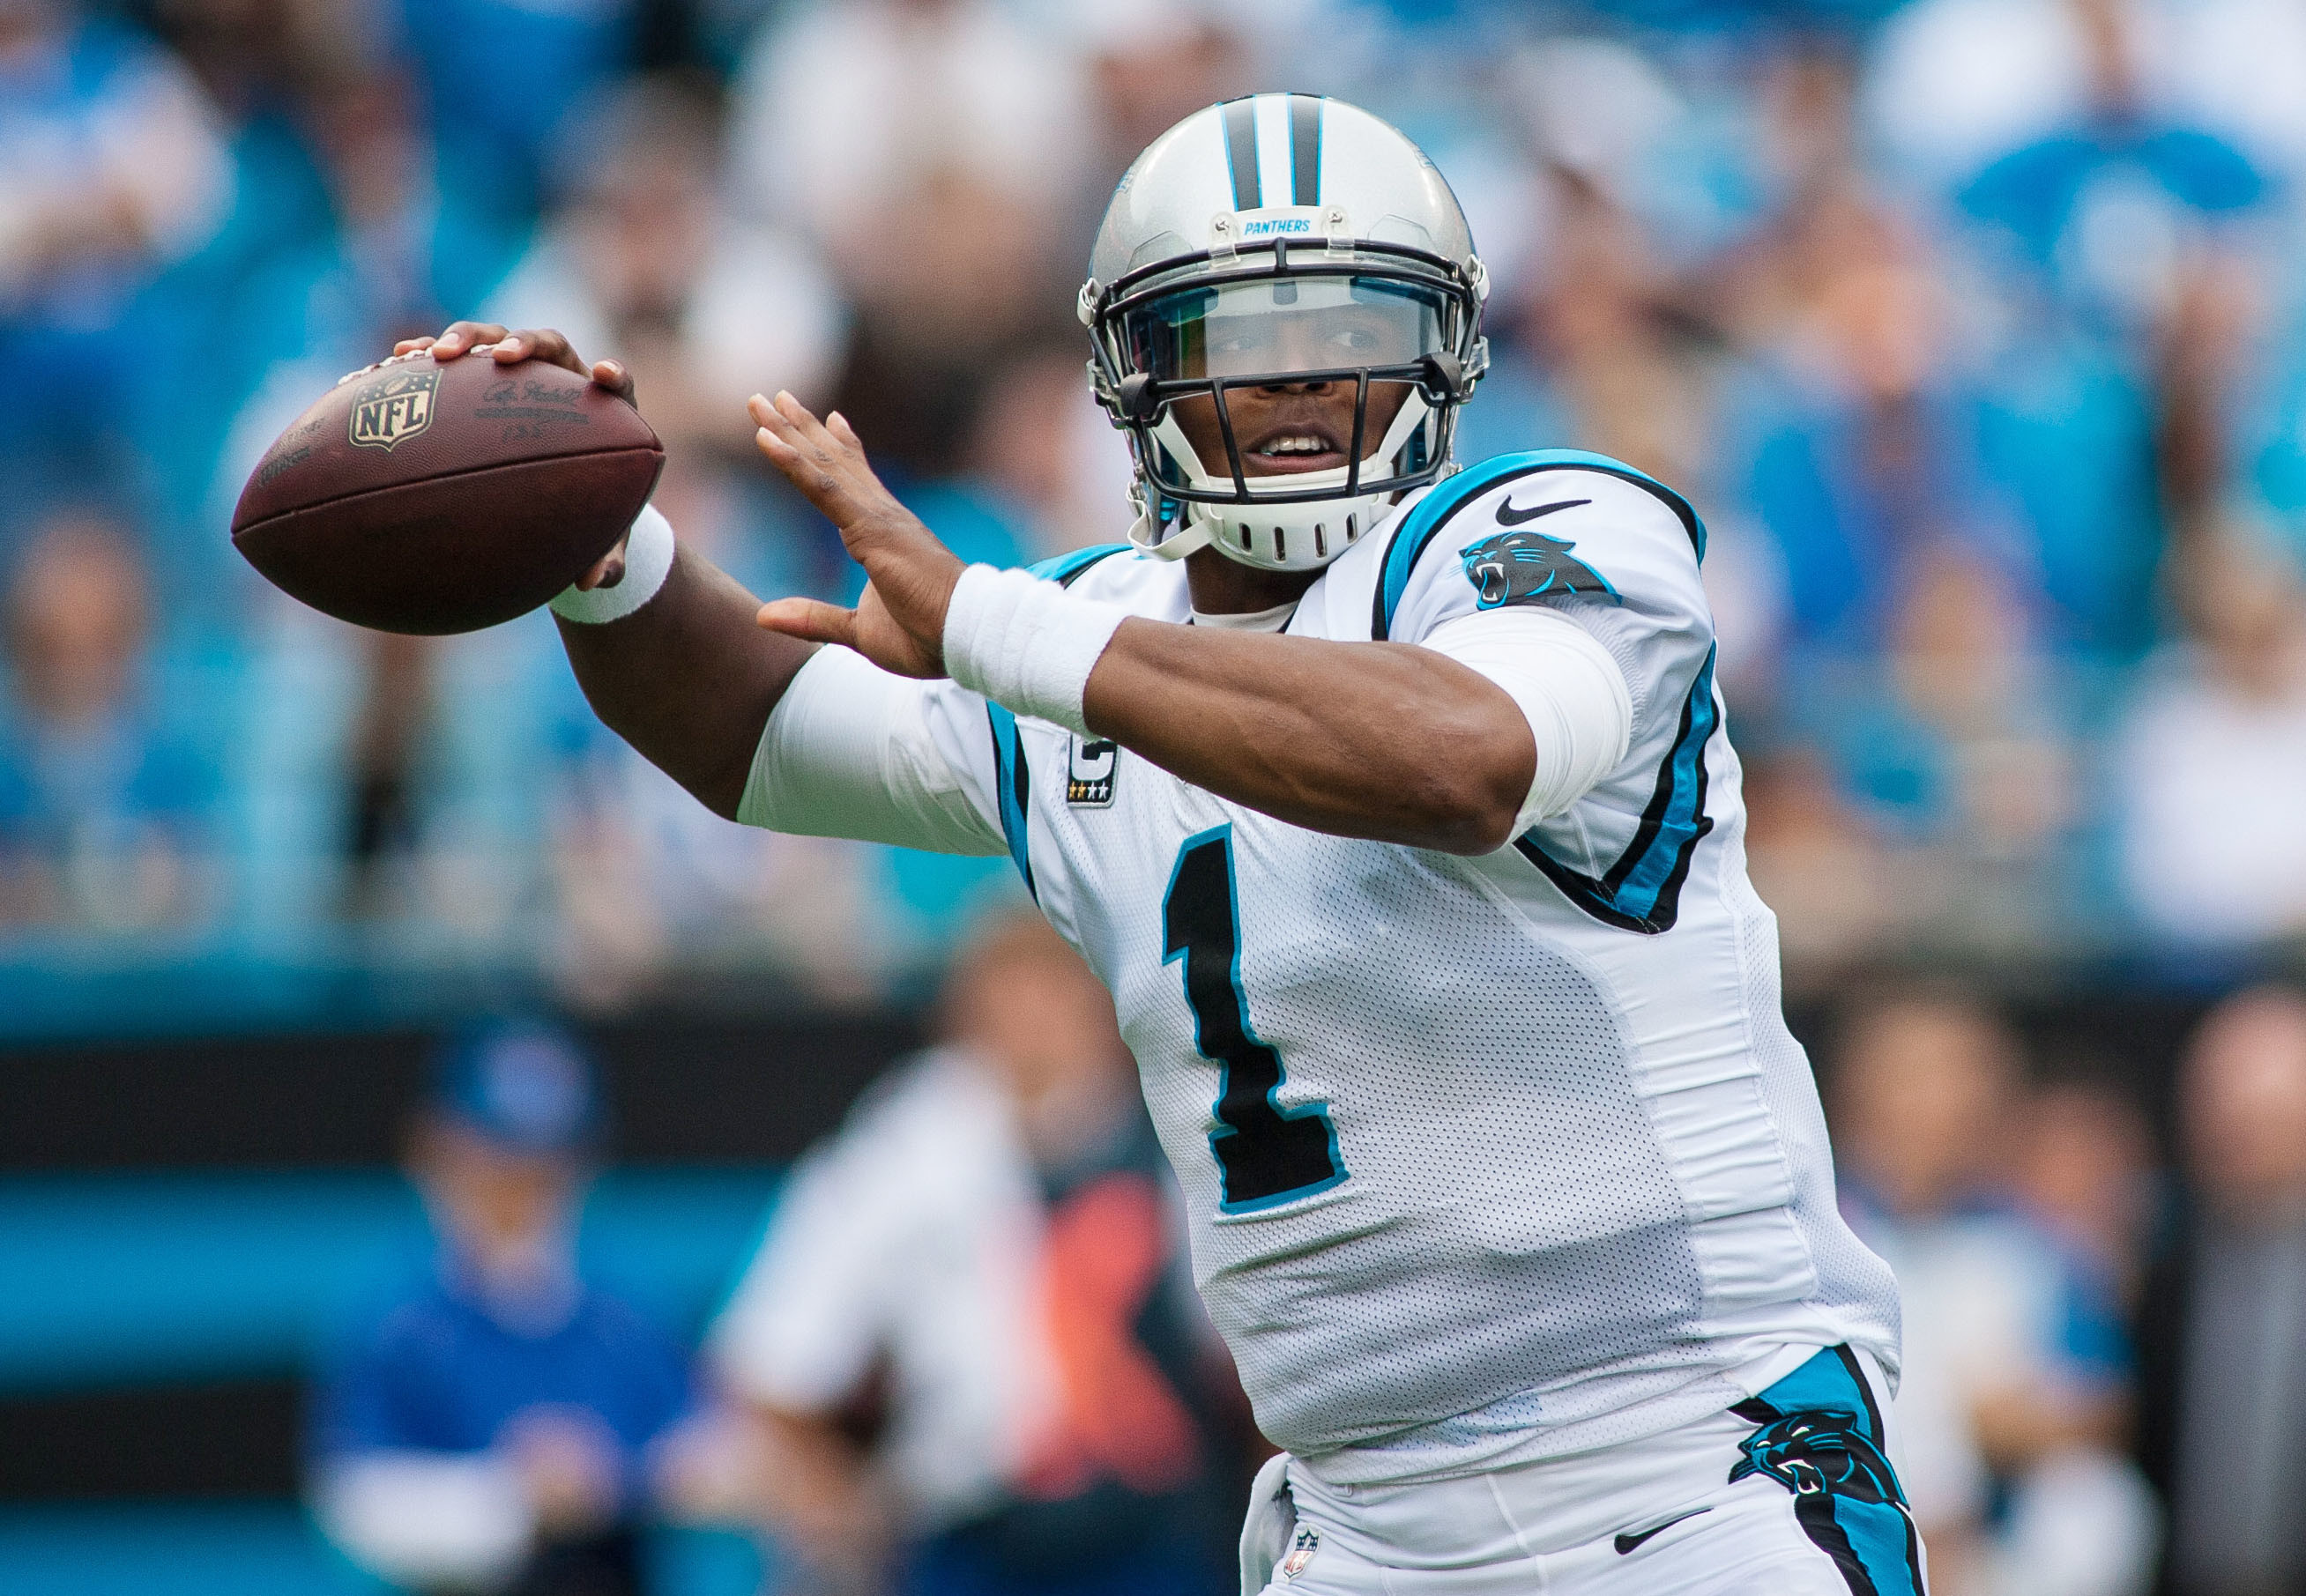 2616x1811 Wallpaper Cam newton, Carolina panthers, American football